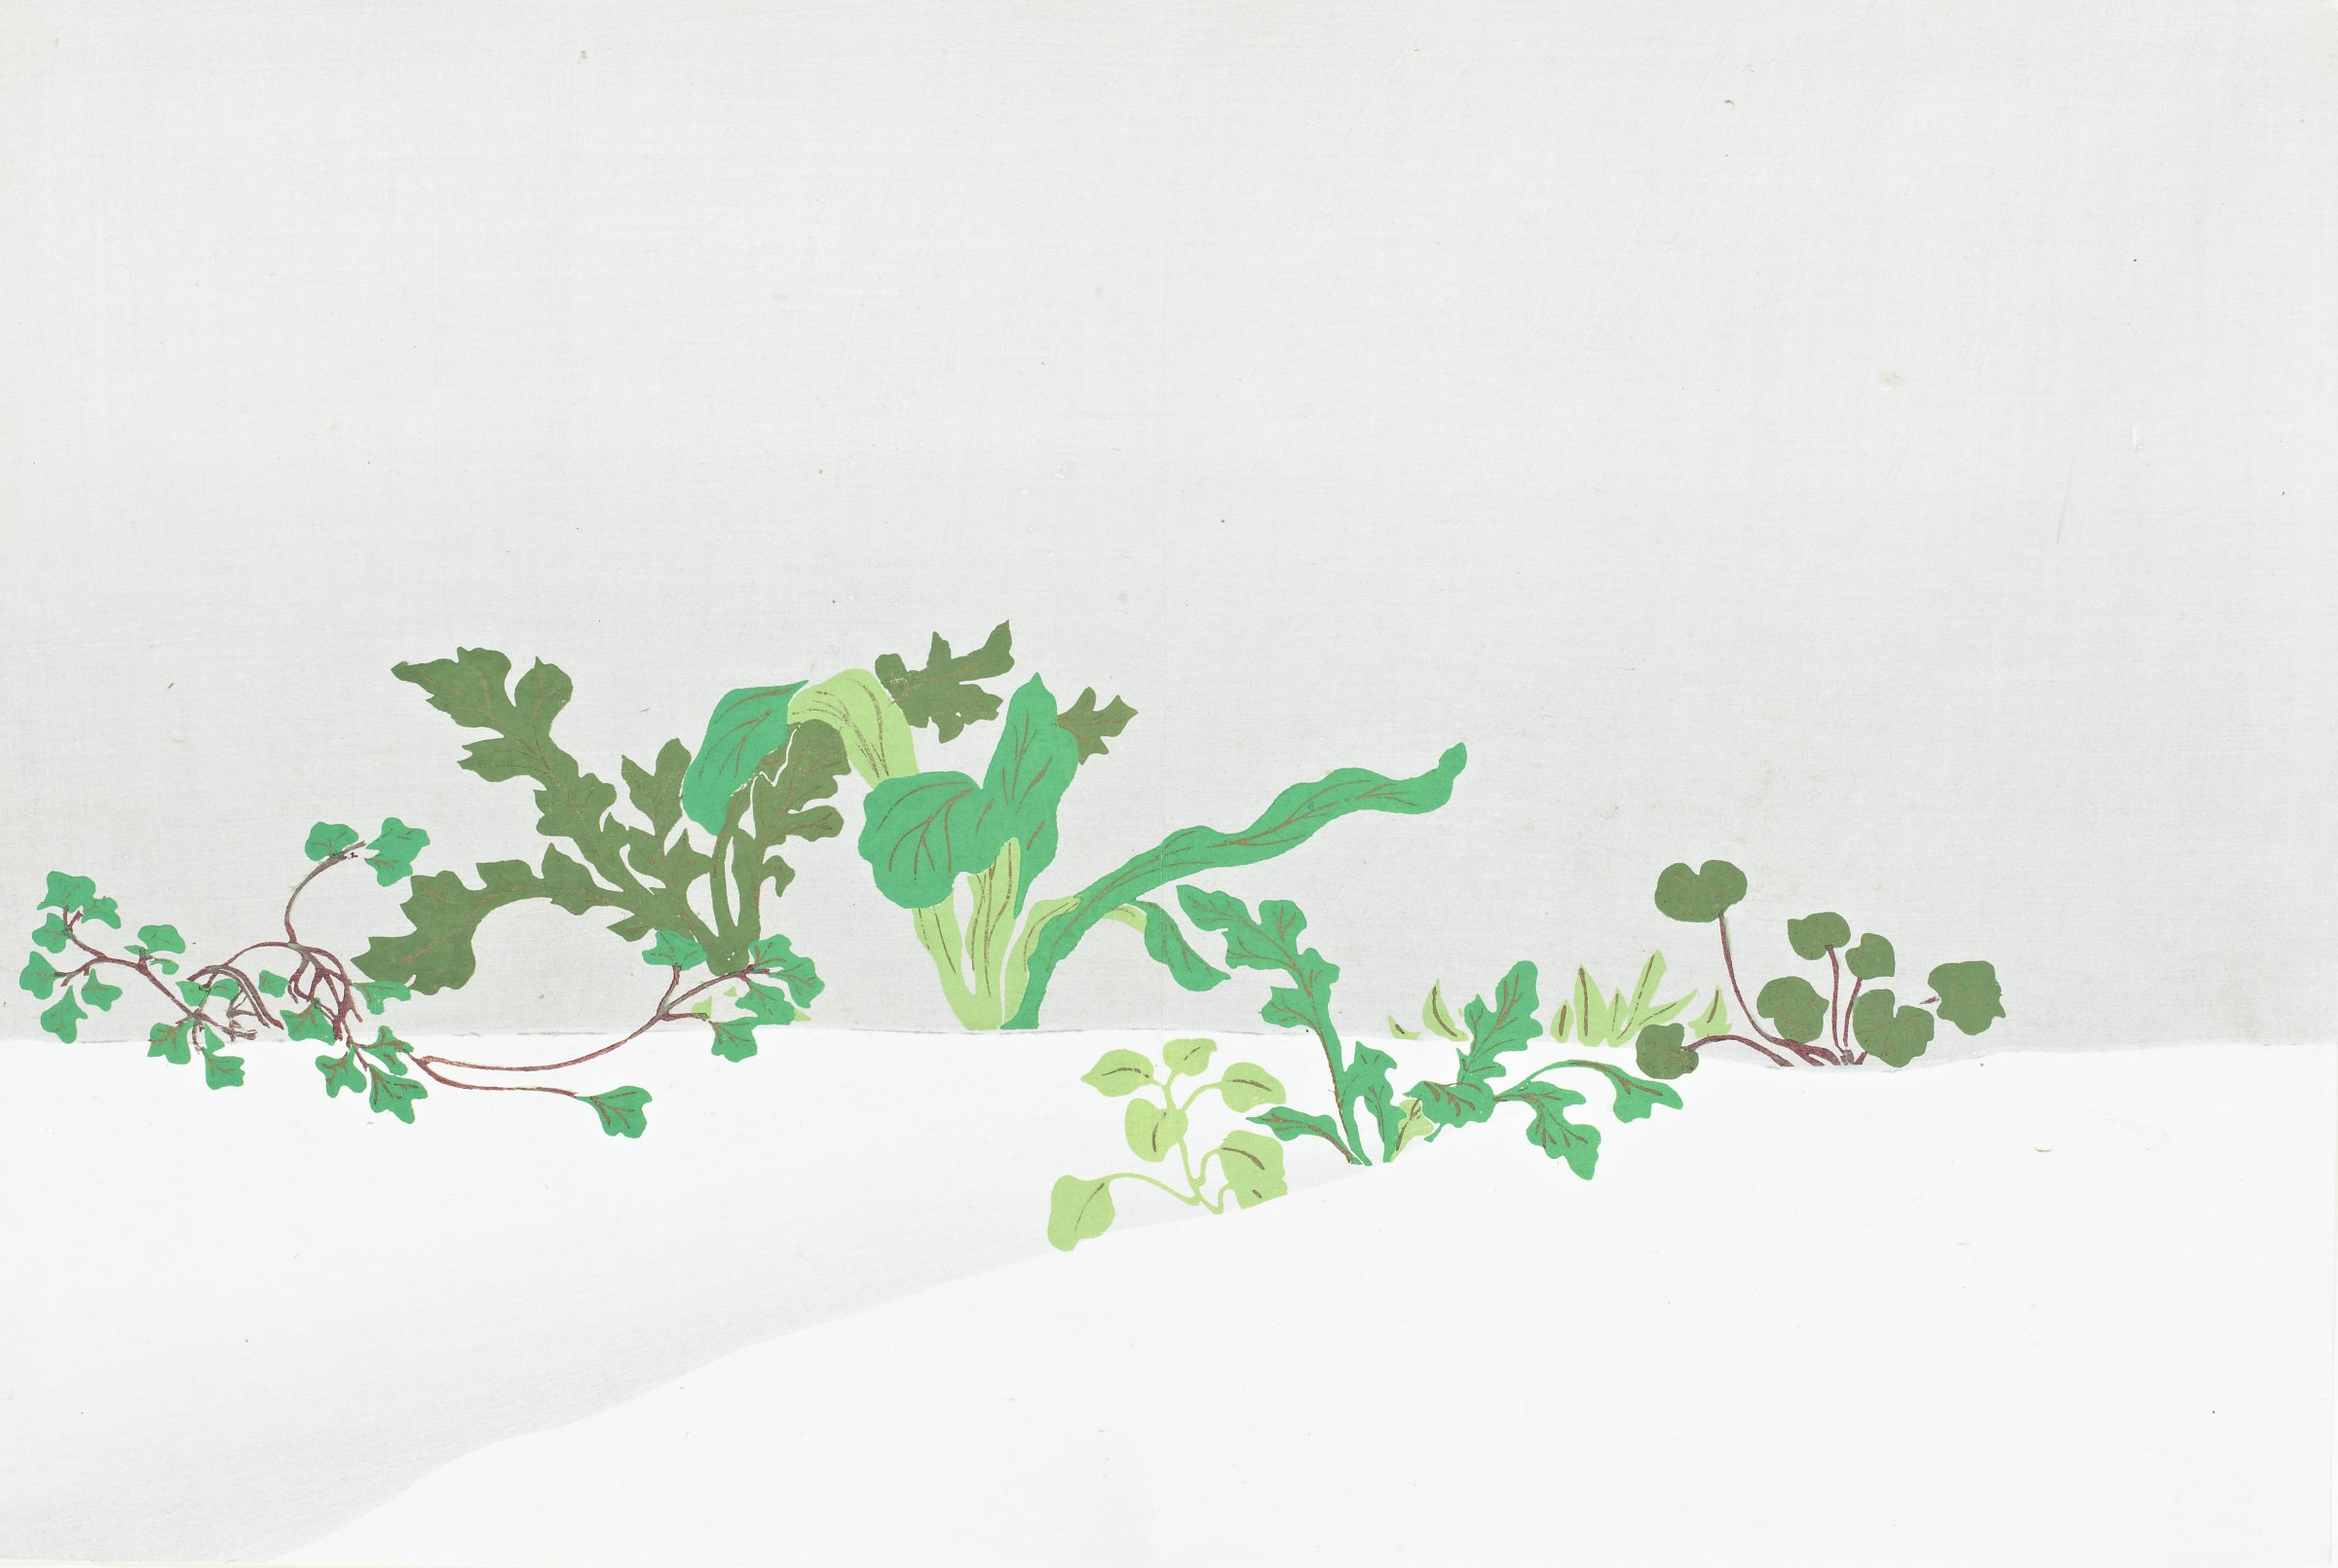 Nanakusa (Seven Herbs of Early Spring), from Momoyogusa (A World of Things), Volume 3, Kamisaka Sekka, ink and color on paper